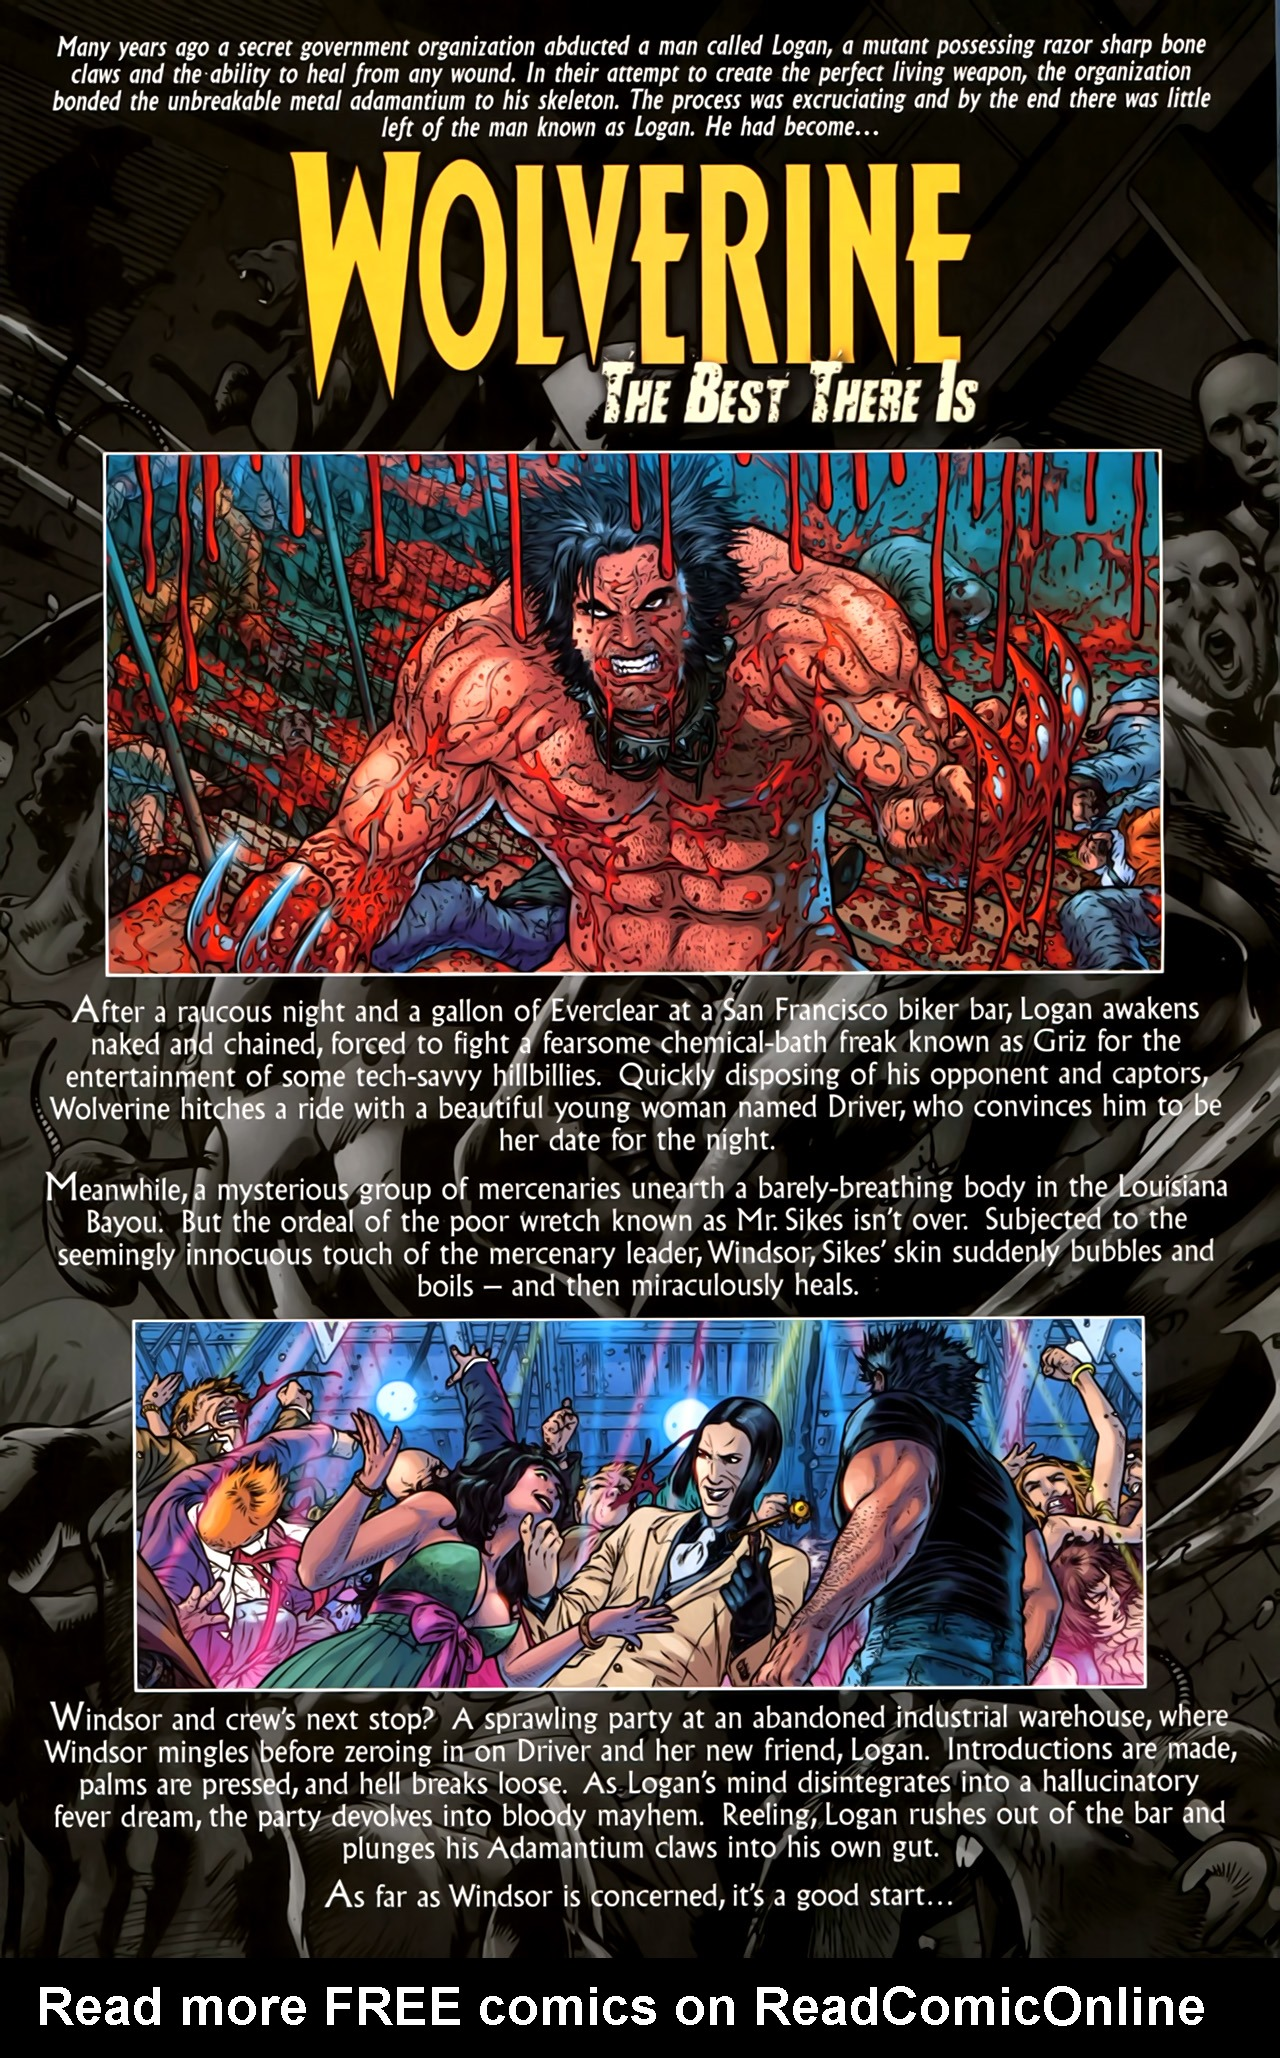 Read online Wolverine: The Best There Is comic -  Issue #2 - 2